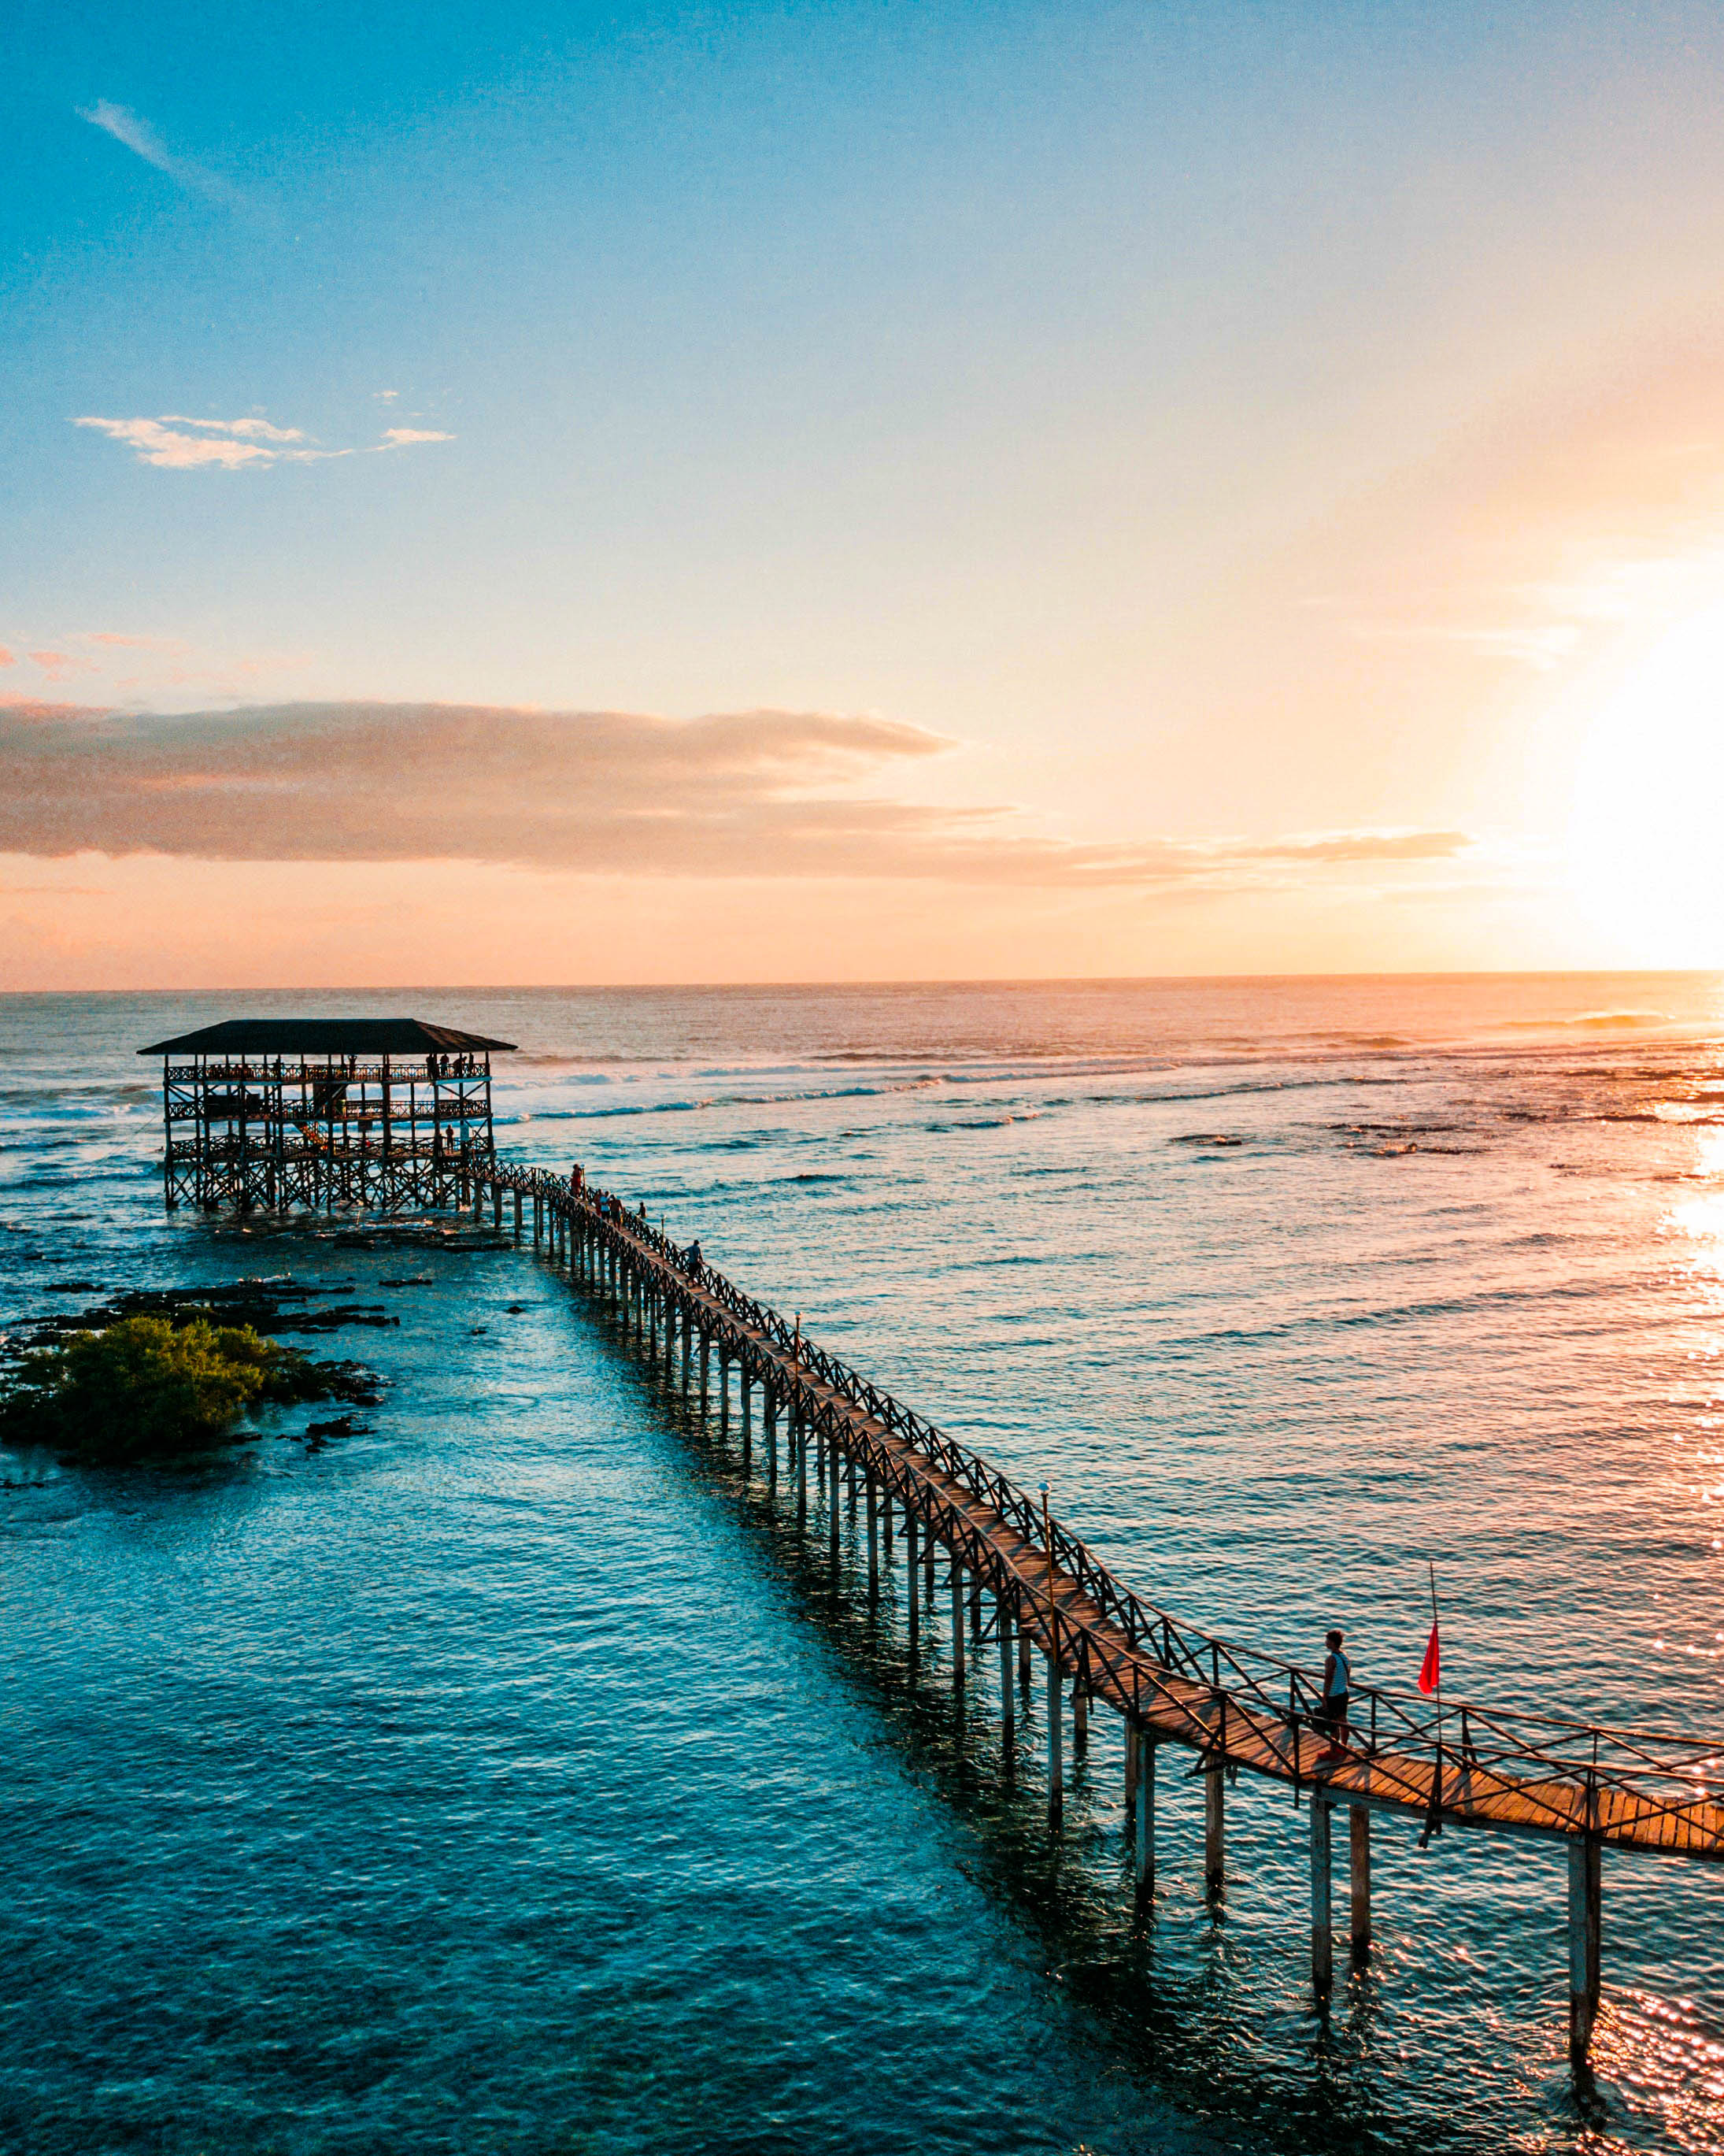 View of a long wooden pier with a three-story viewing deck during sunset in Siargao, Philippines